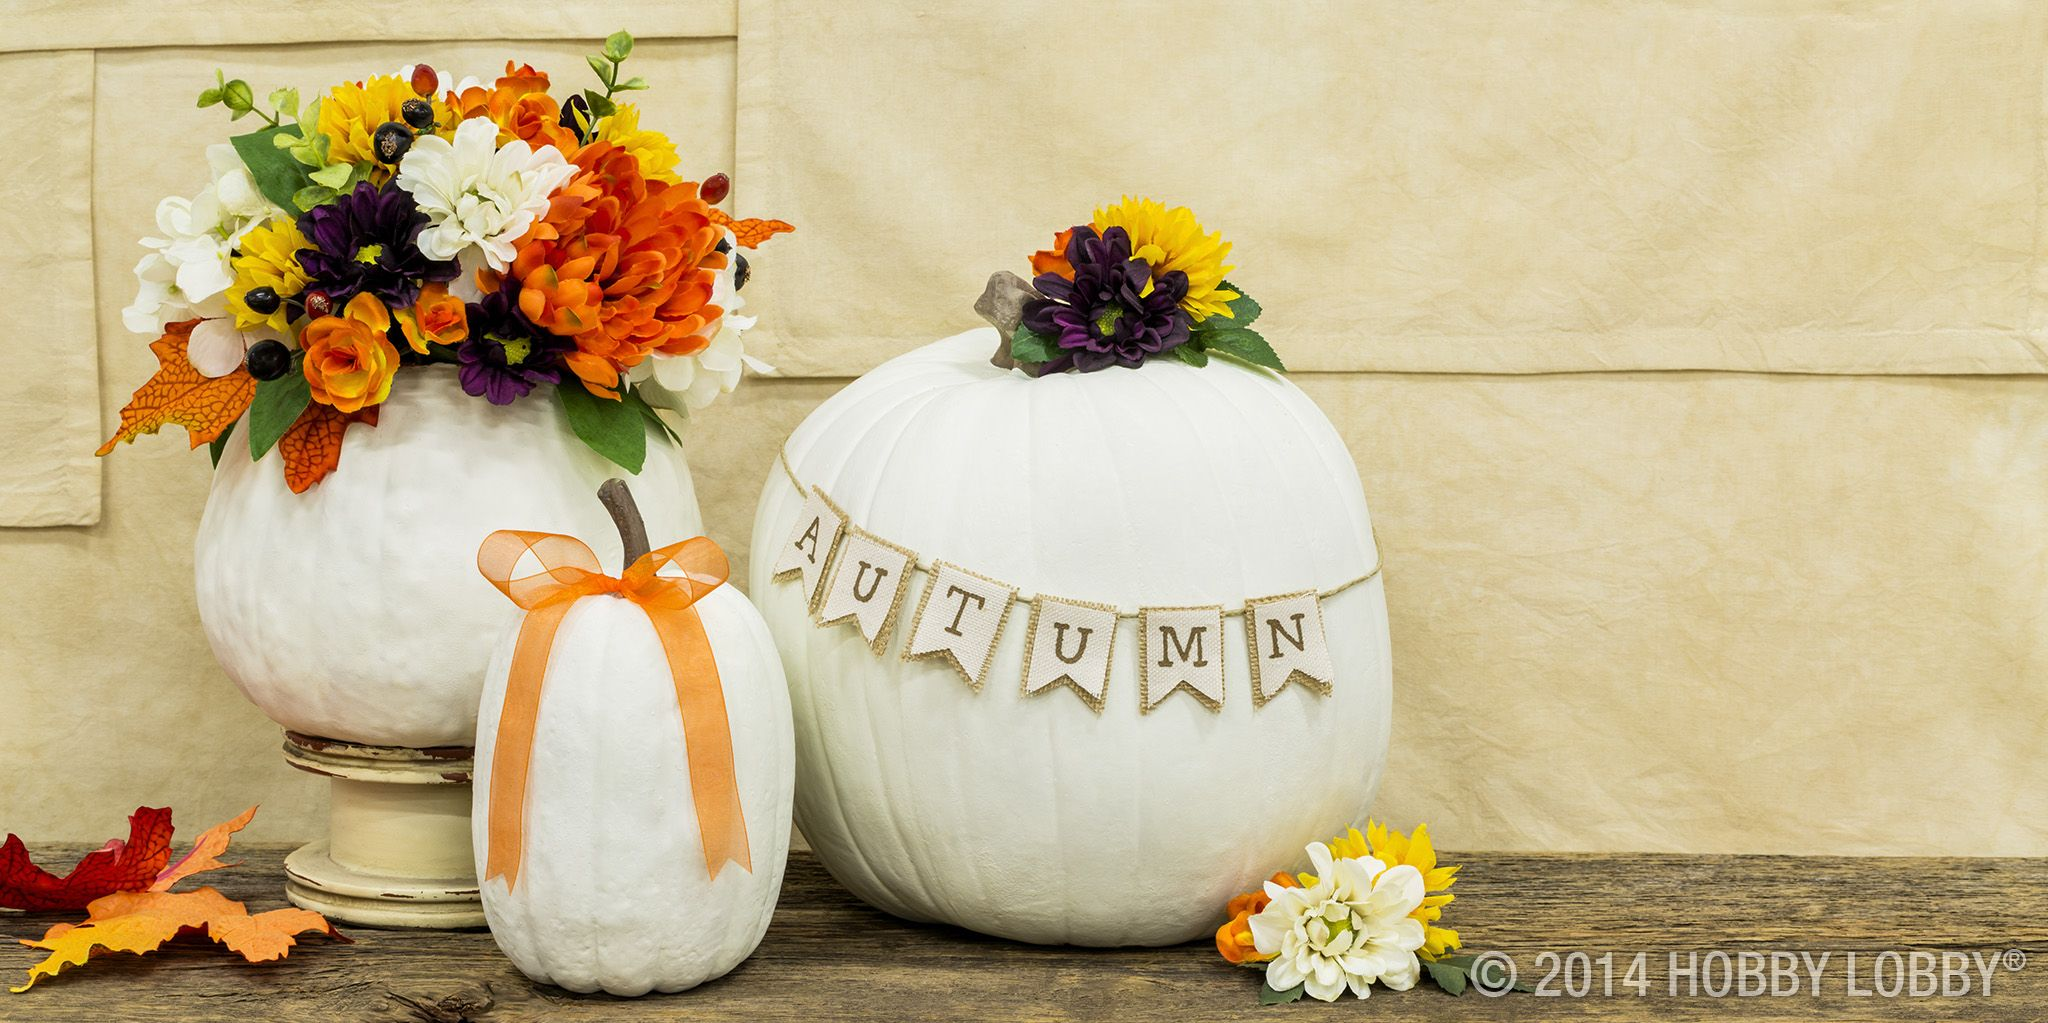 Dress up a pretty pumpkin with fall flowers and homemade pennant - Hobby Lobby Halloween Decorations